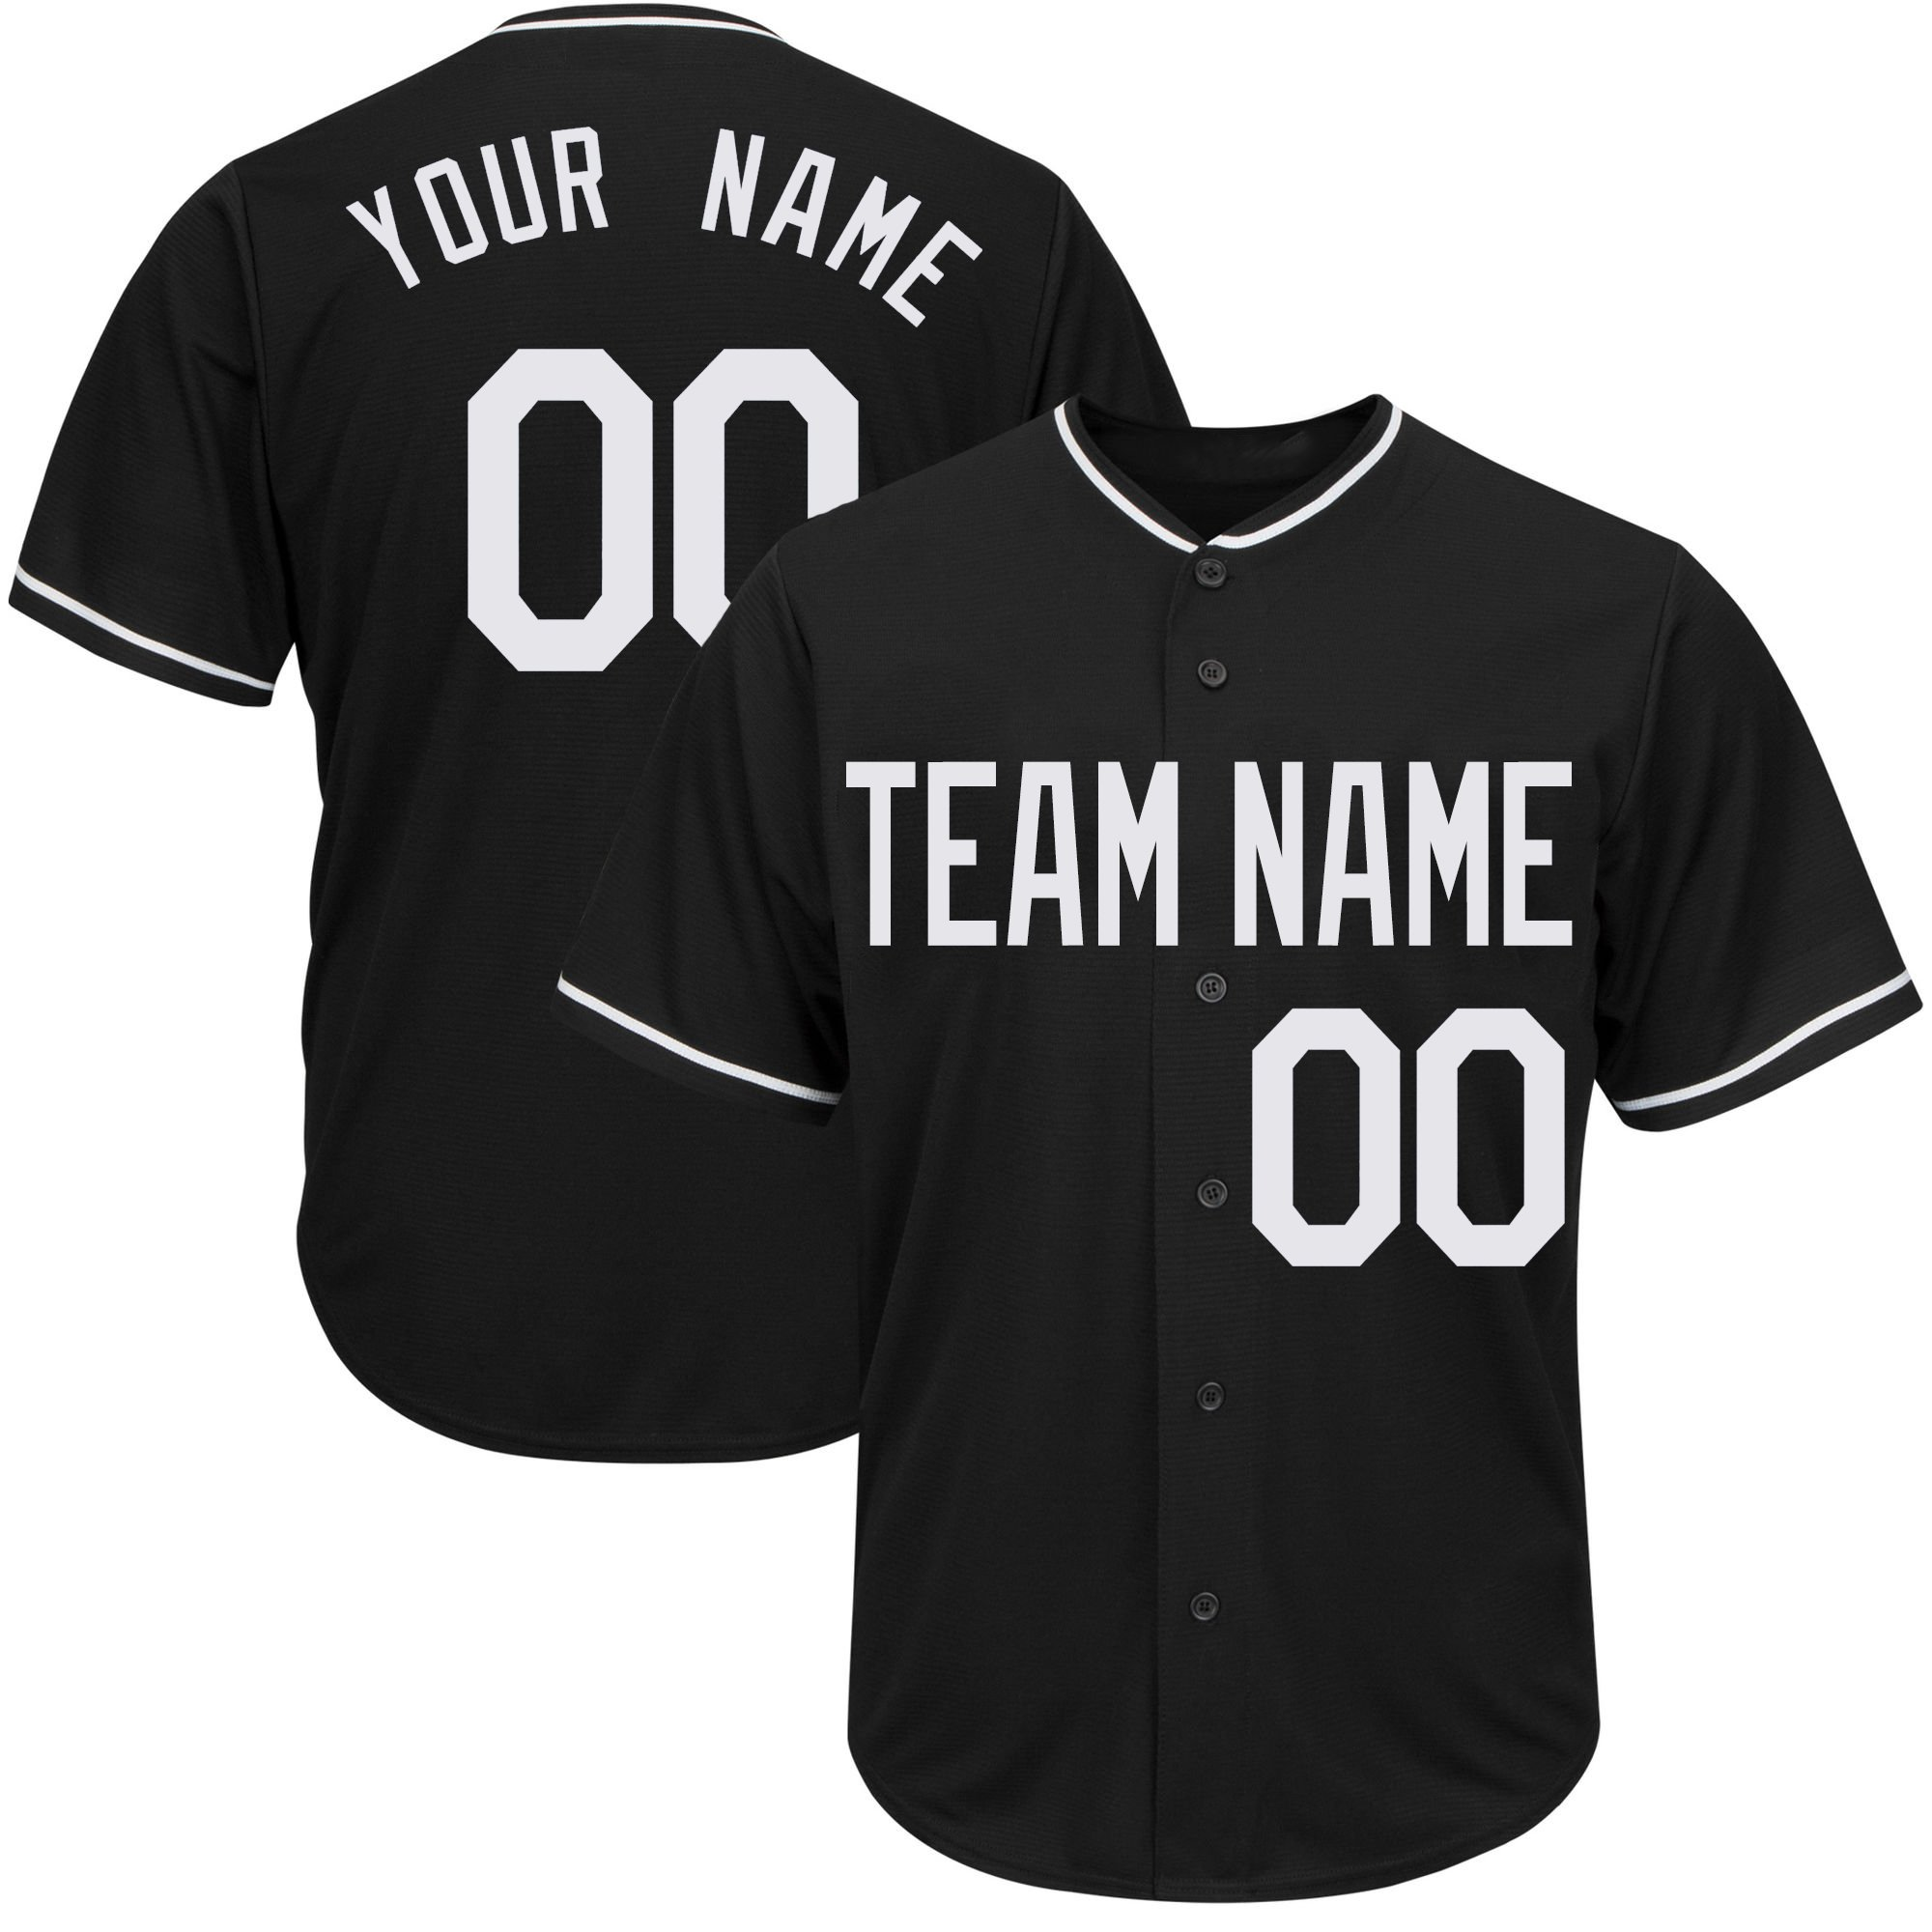 DEHUI Customized Women's Black Mesh Baseball Jersey with Stitched Player Team Name and Your Numbers,White Size M by DEHUI